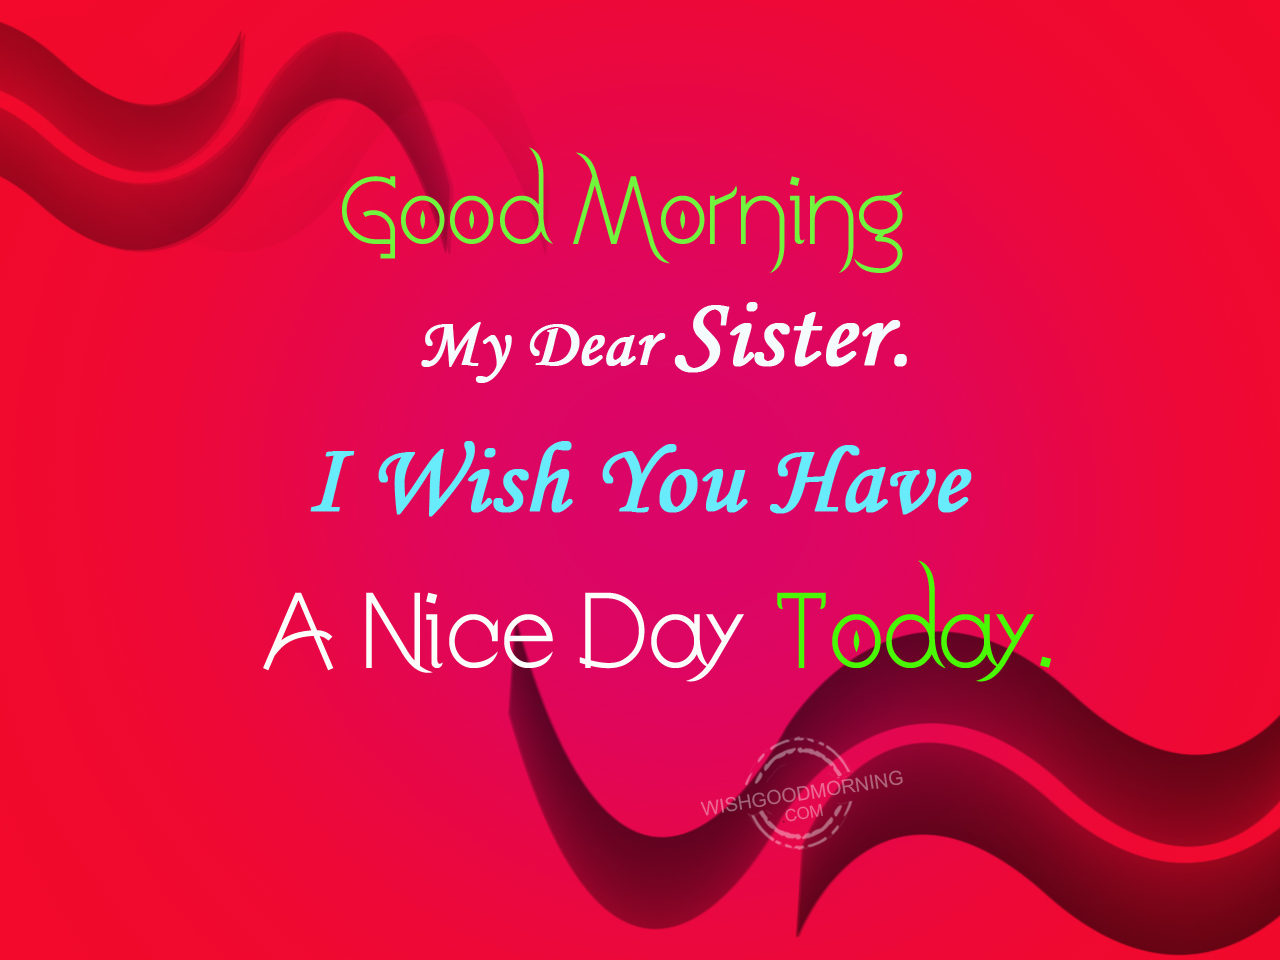 Good Morning Sister Images : Good morning wishes for sister pictures